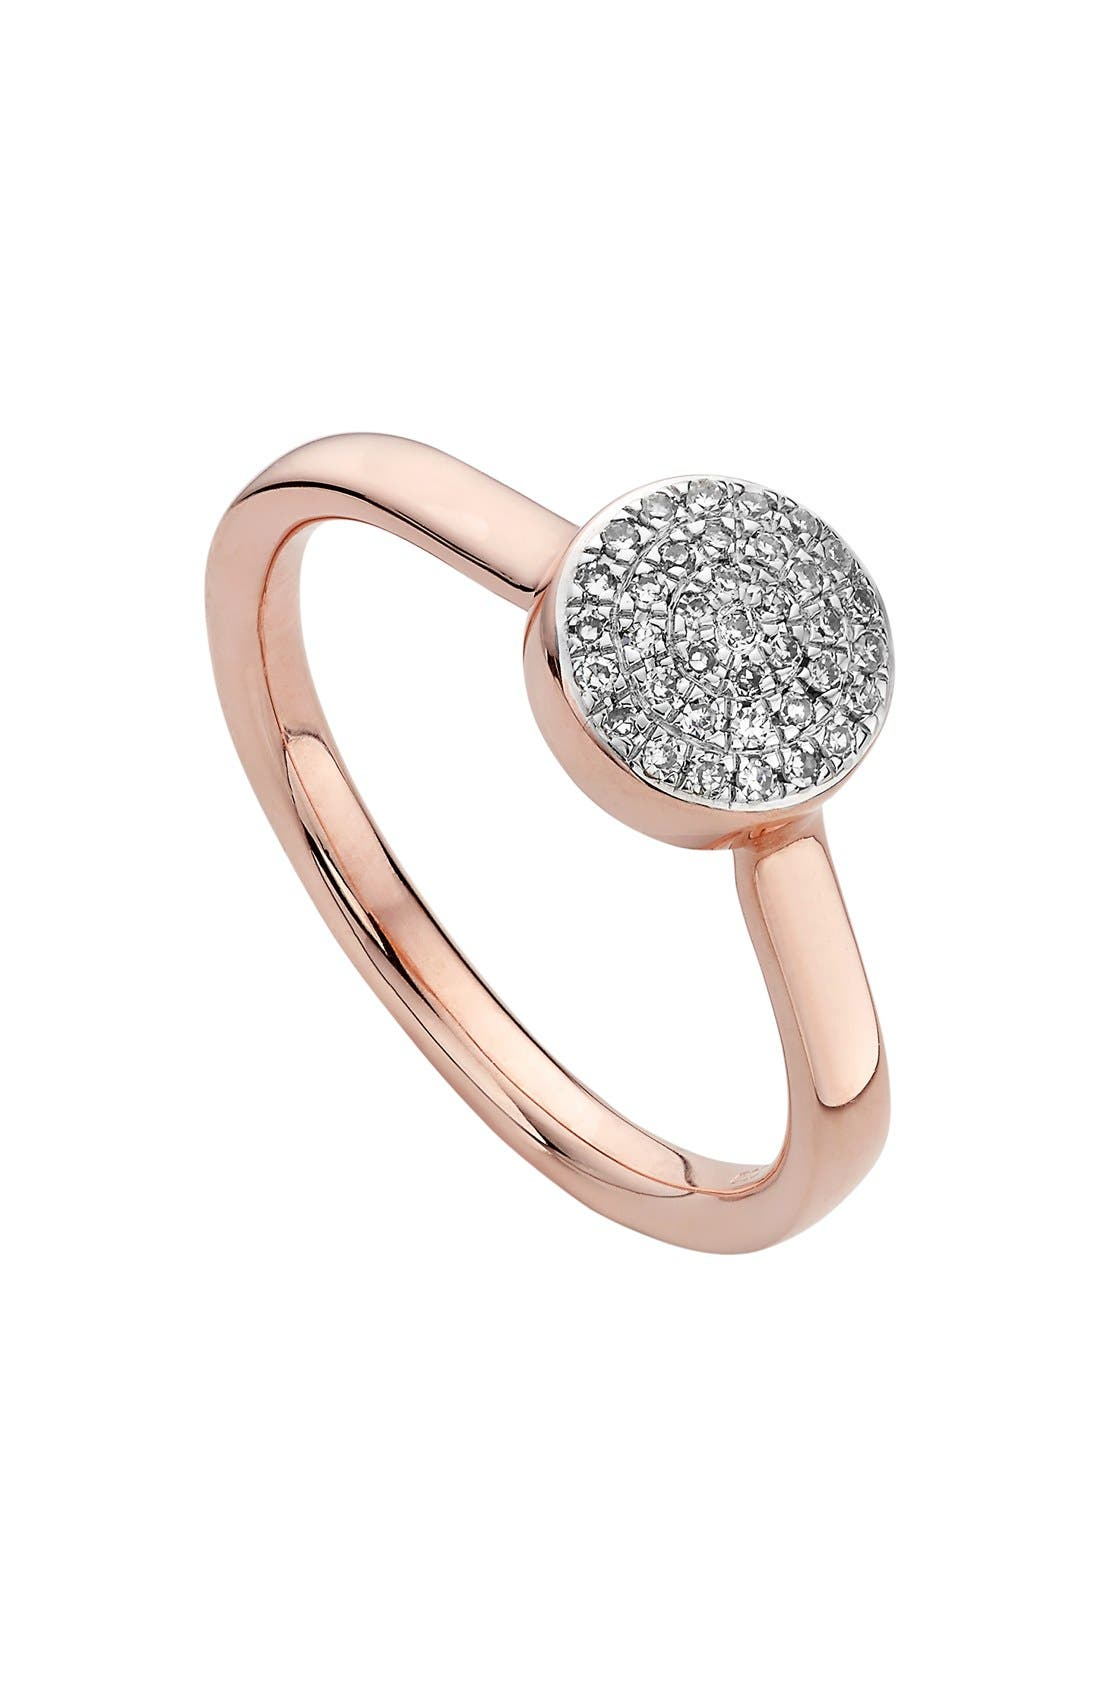 'Ava' Diamond Button Ring,                             Main thumbnail 1, color,                             ROSE GOLD